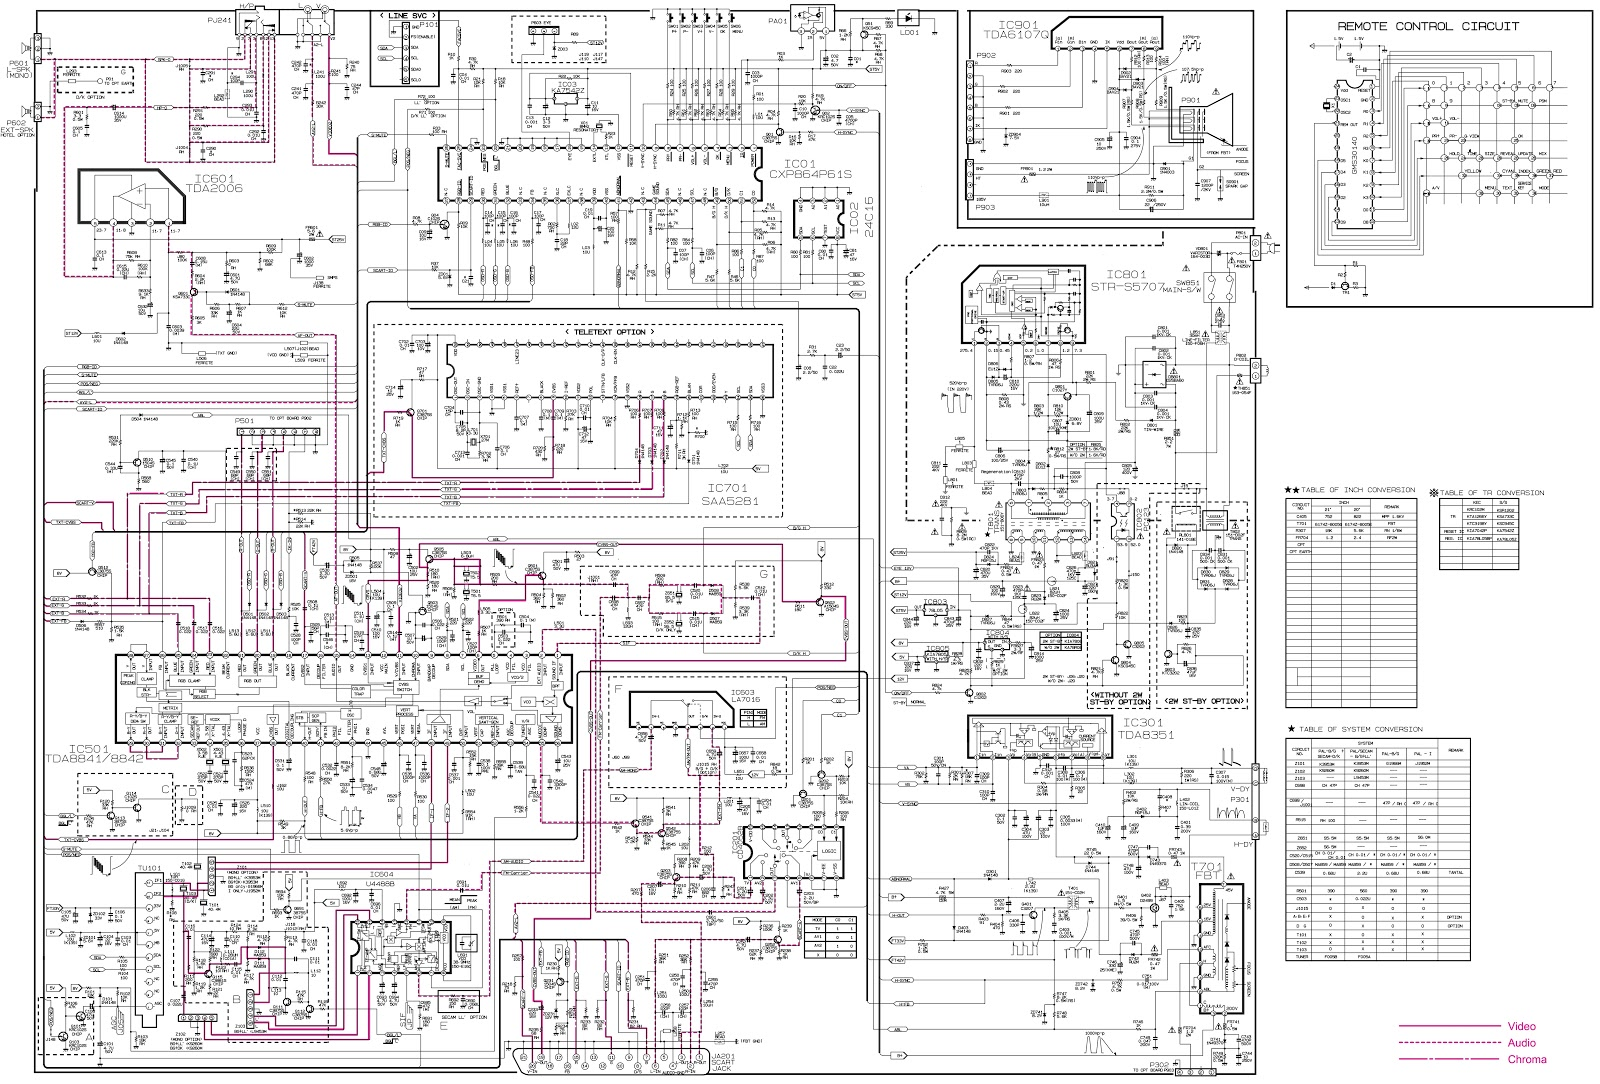 Wiring Diagram For Ckhkc Delay Timer 8 Pin